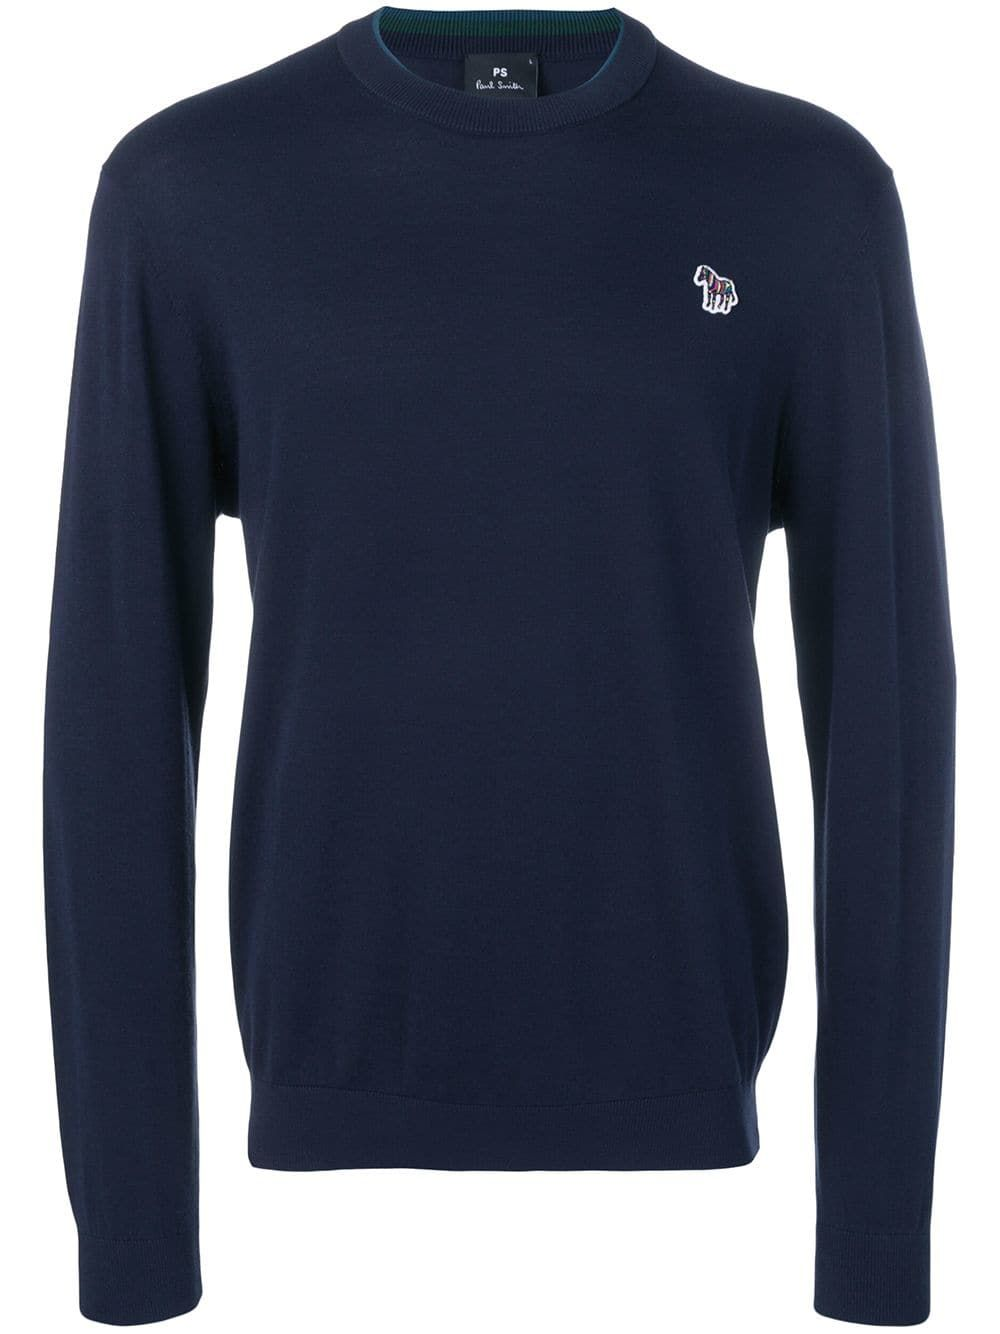 PS by Paul Smith Good Sweatshirt Summer Collection Men